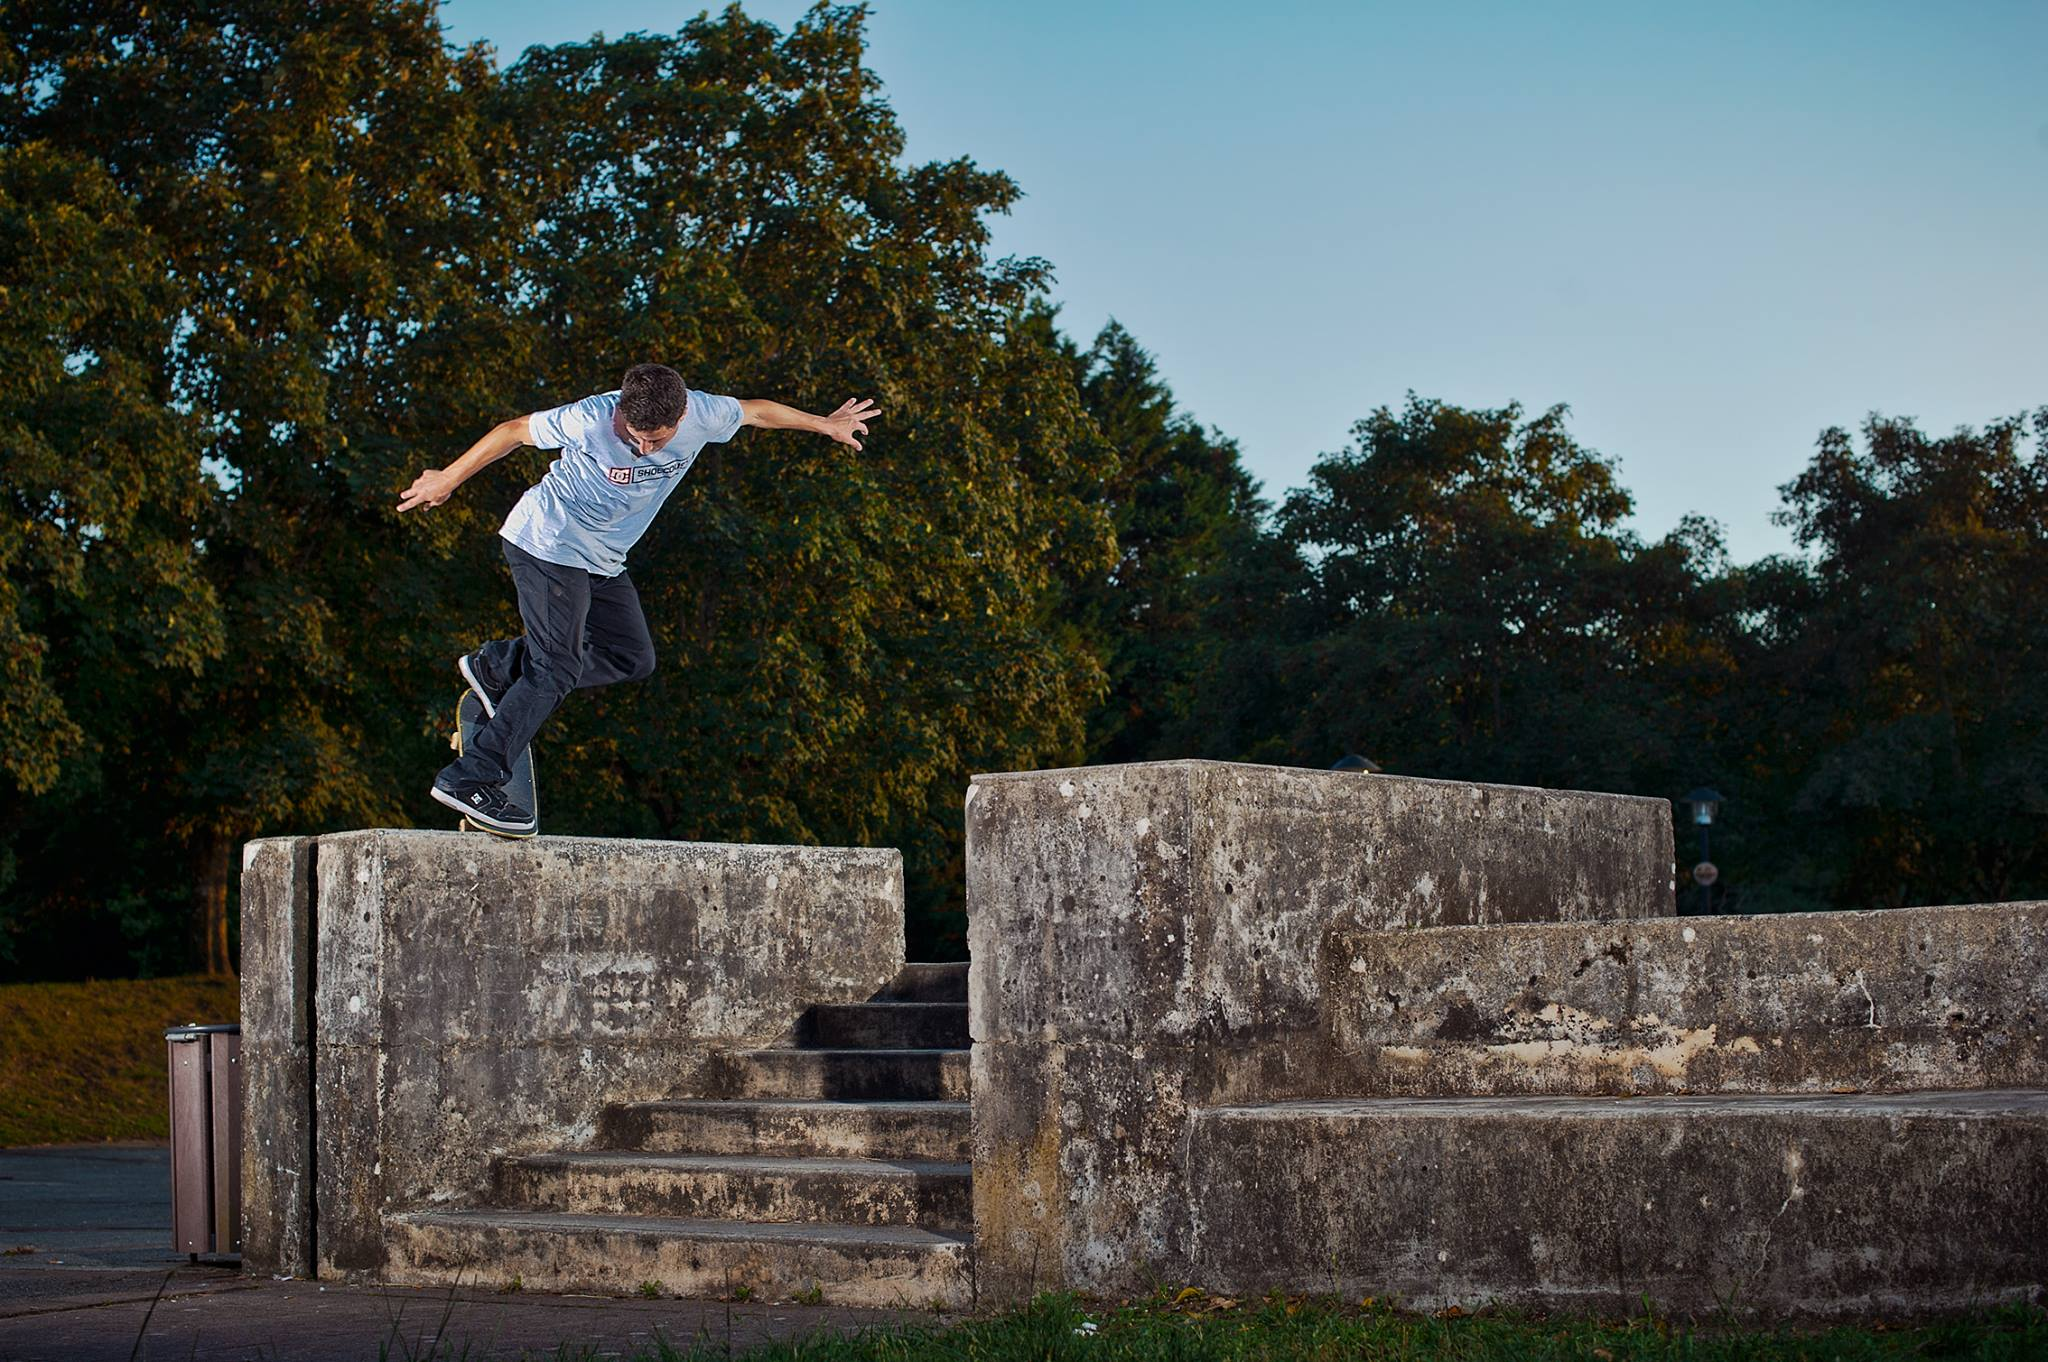 Back_nose_blunt_David_Manaud.jpg